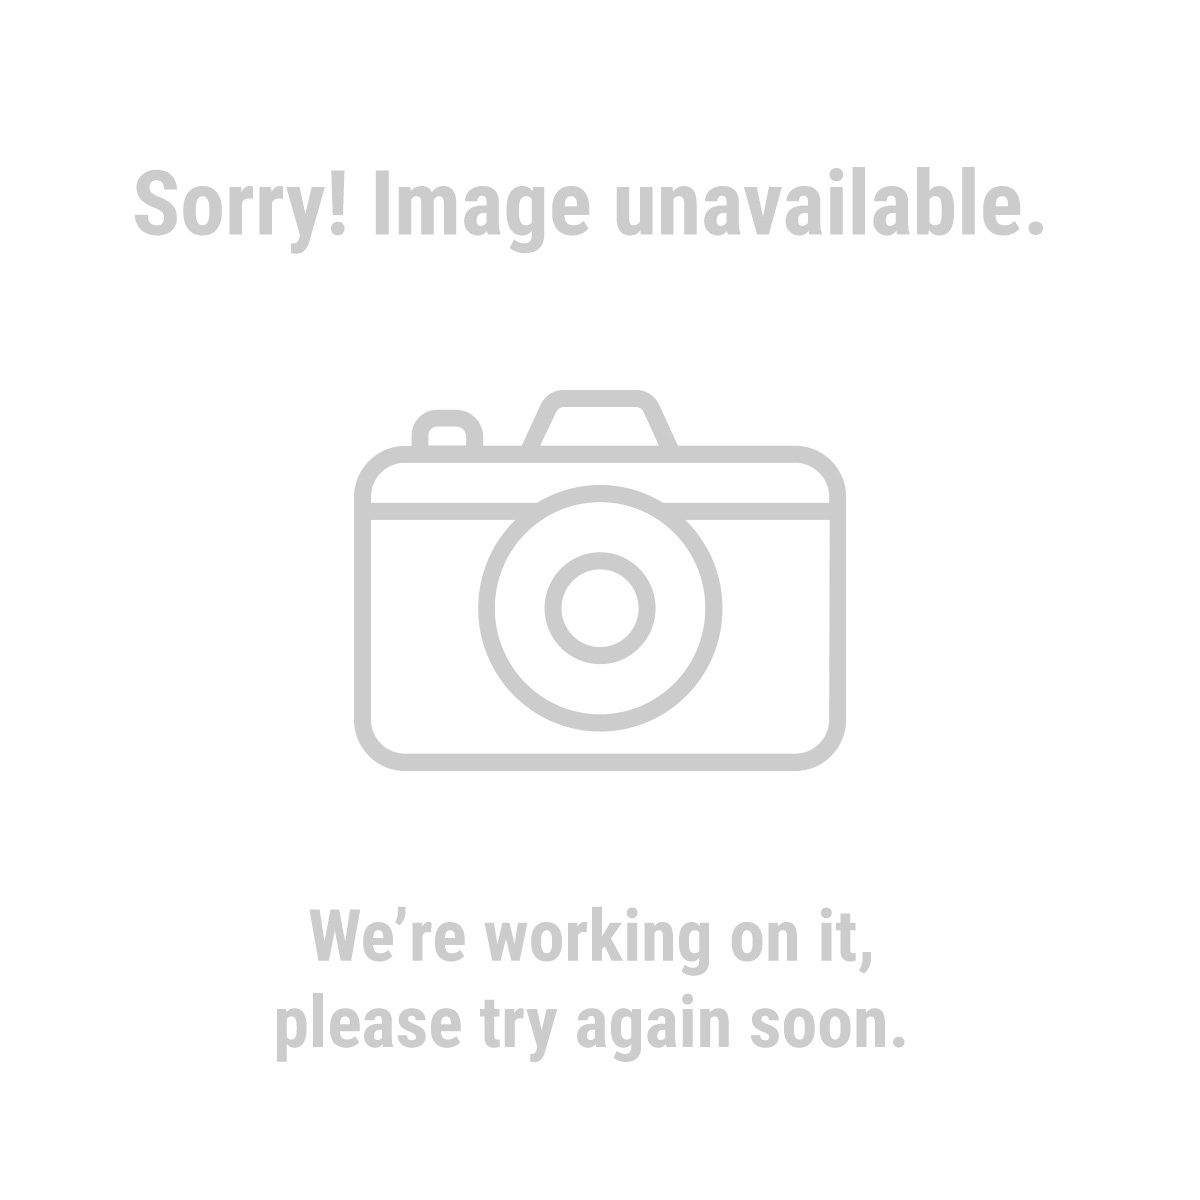 45 Piece Titanium Nitride Coated Alloy Steel  Metric Tap & Die Set